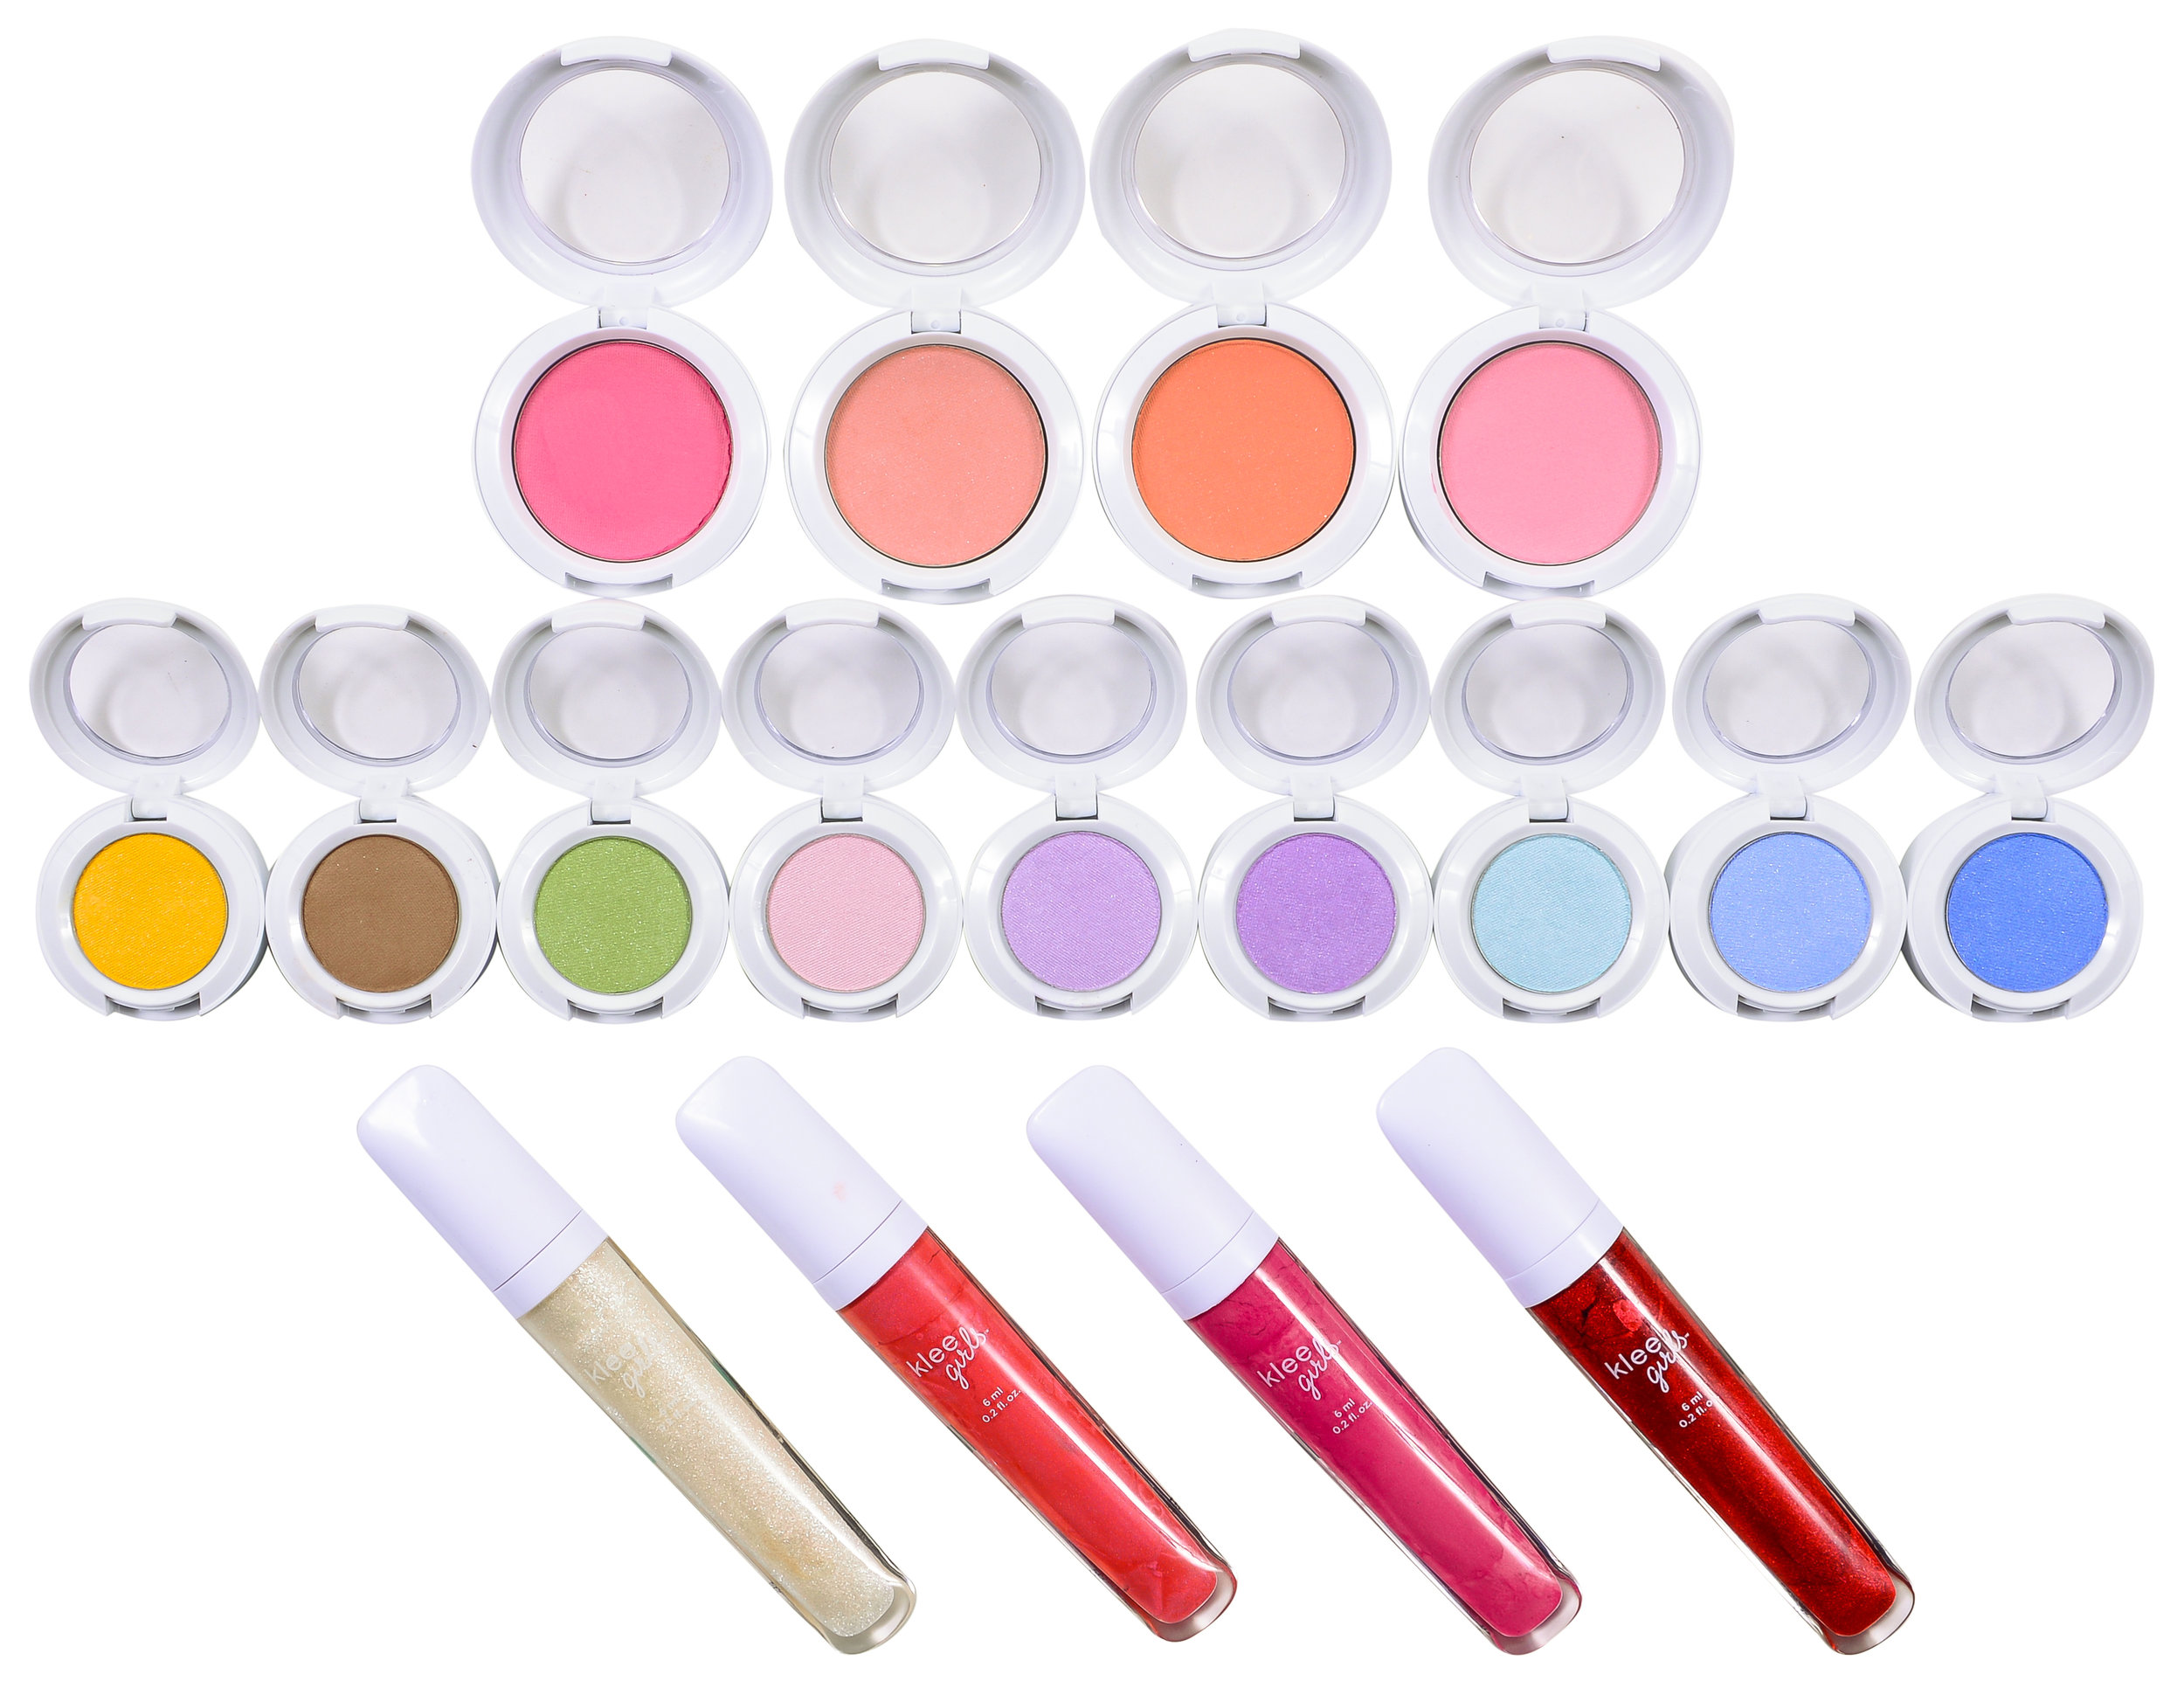 Klee GIRLS pressed powder compacts and Lip Gloss Selection